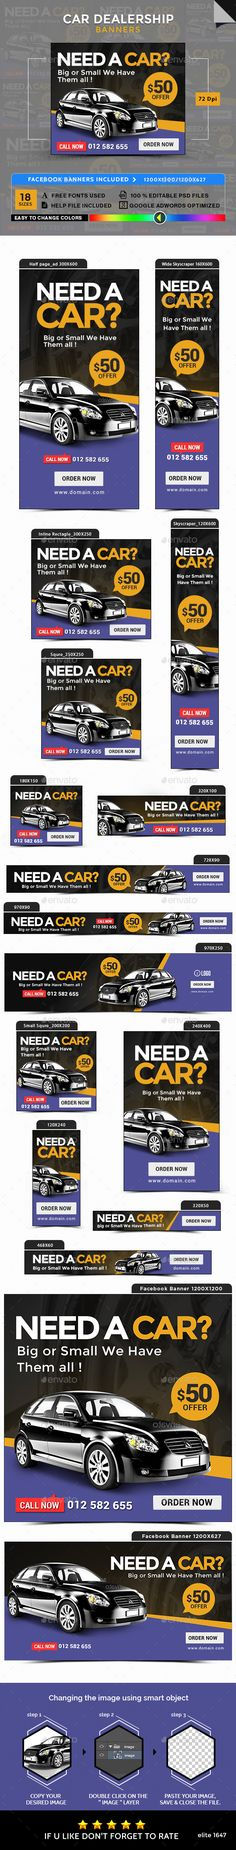 Car Dealership Banners  PSD Template • Download ➝ https://graphicriver.net/item/car-dealership-banners/17104657?ref=pxcr